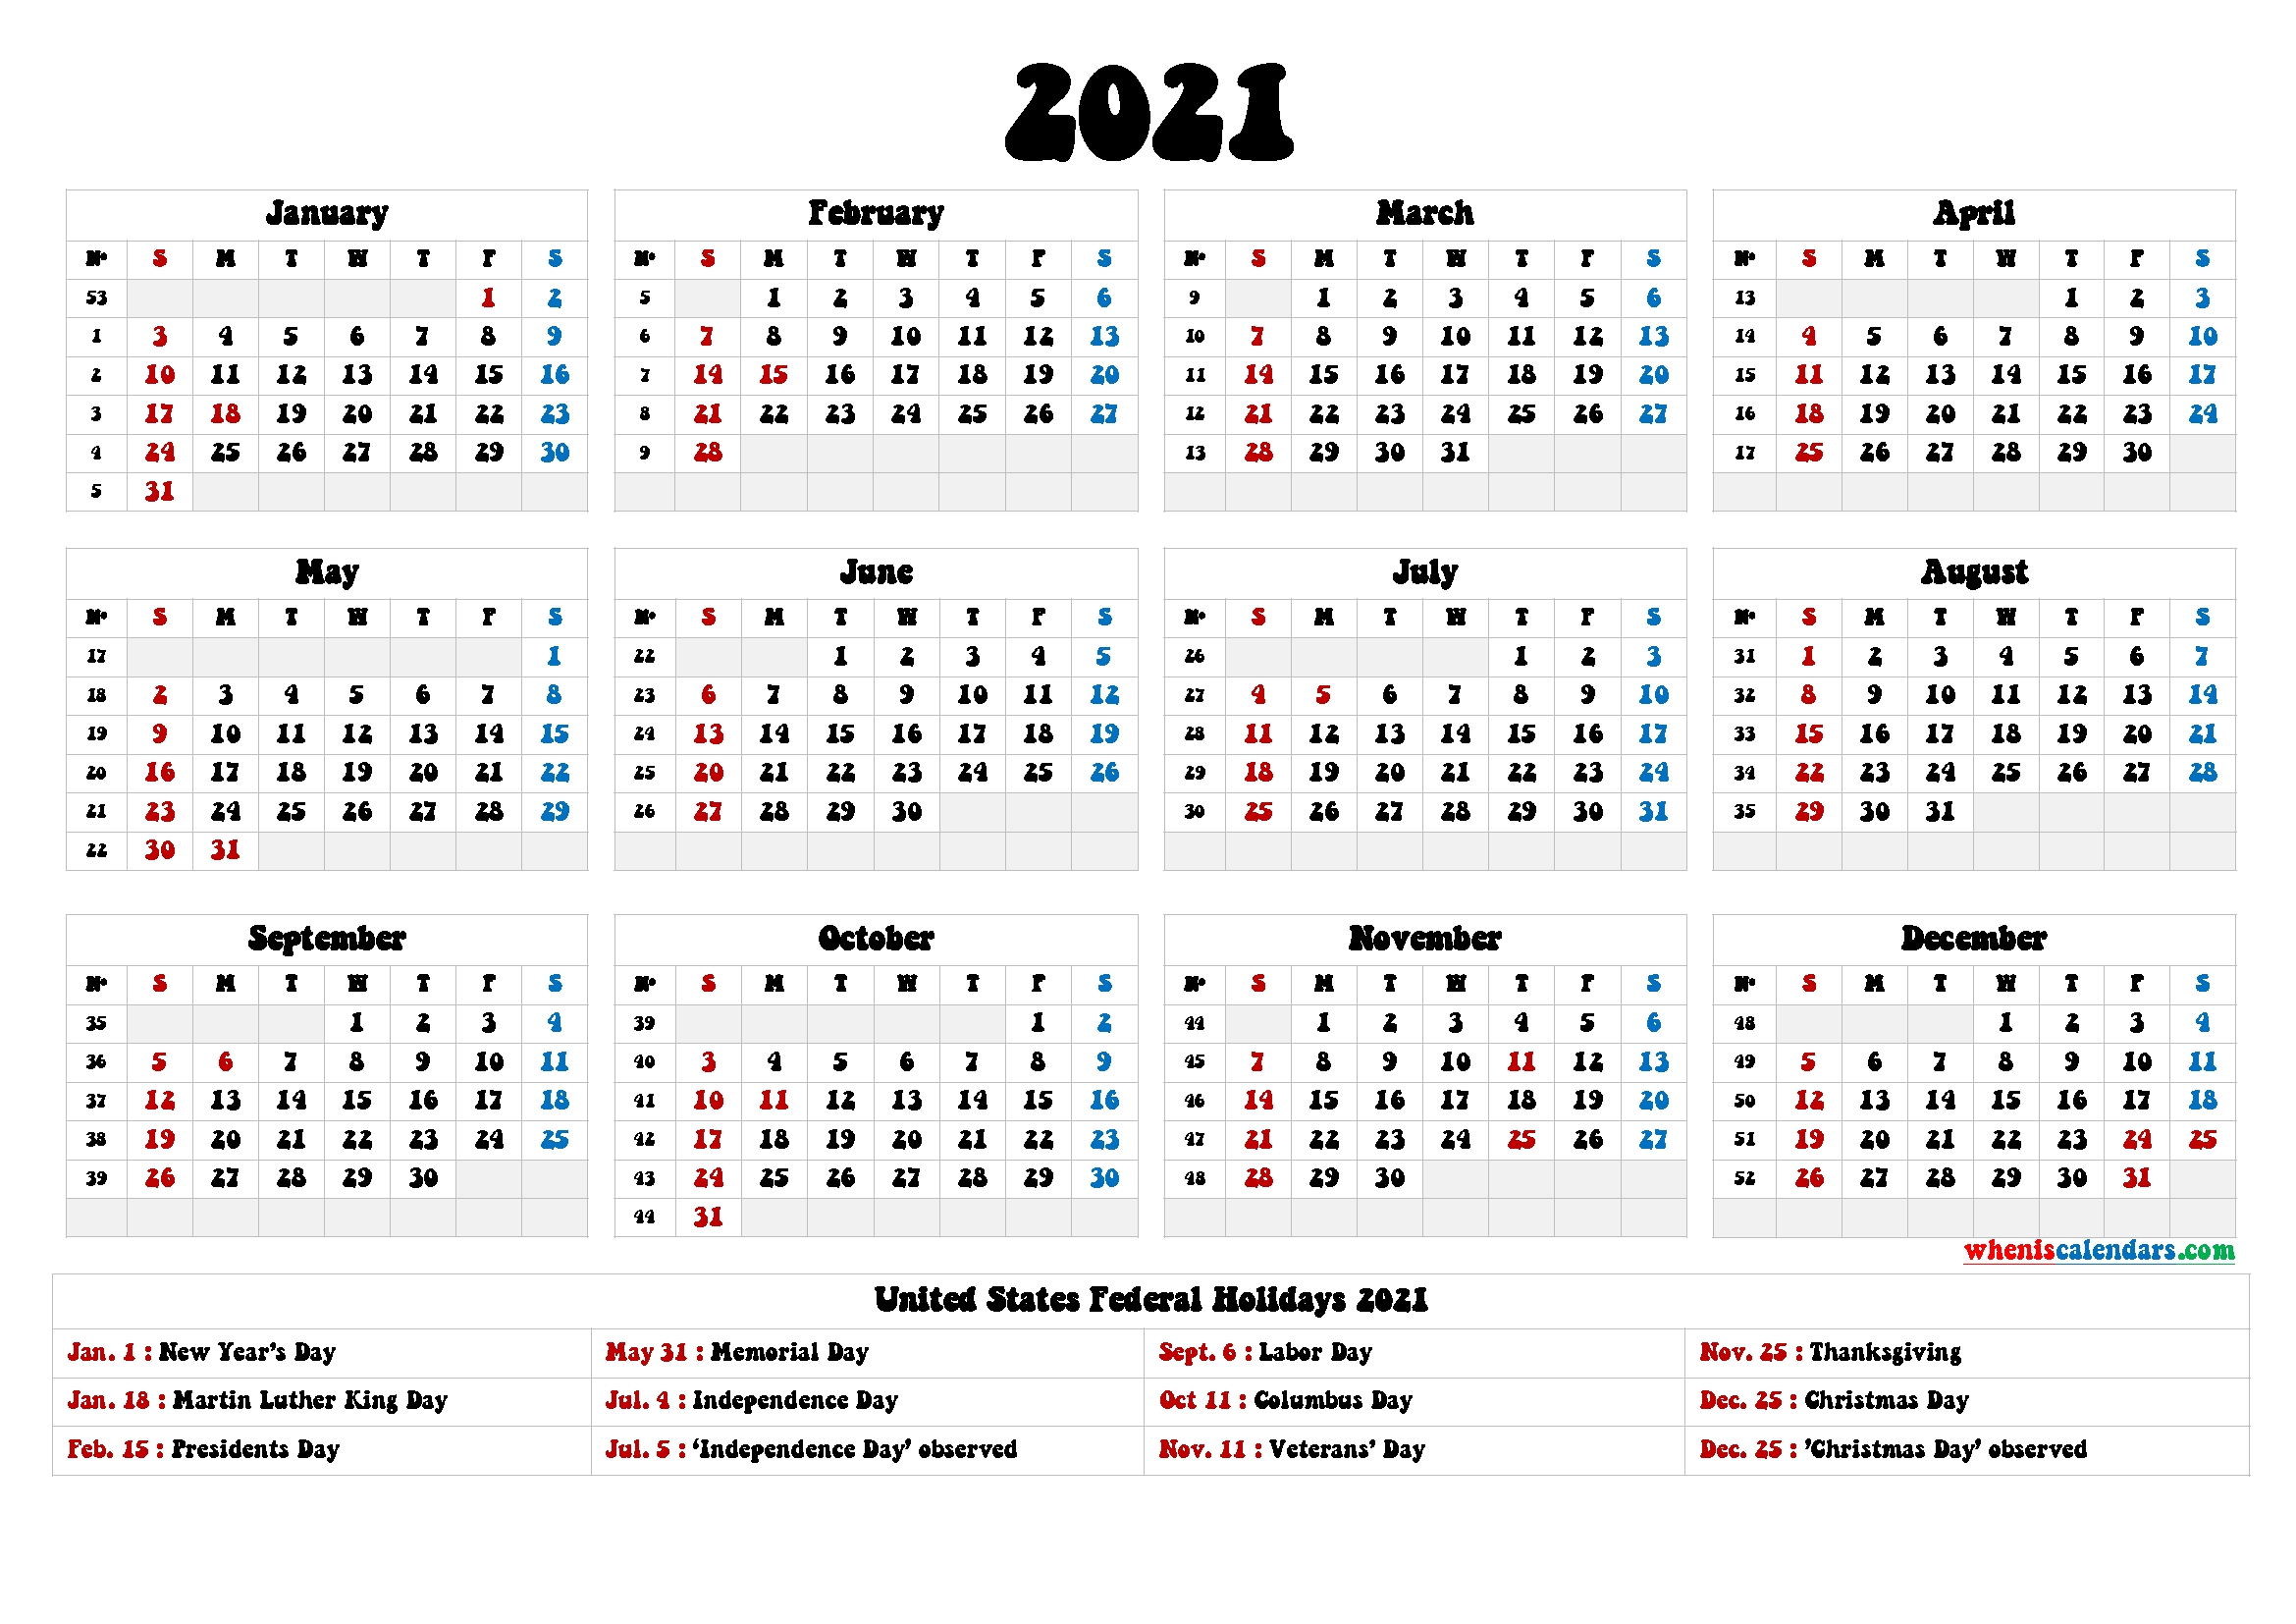 4Mmonth Calendar On One Page 2021  Example Calendar Printable pertaining to Desktop Calendars 2021 Free Printable